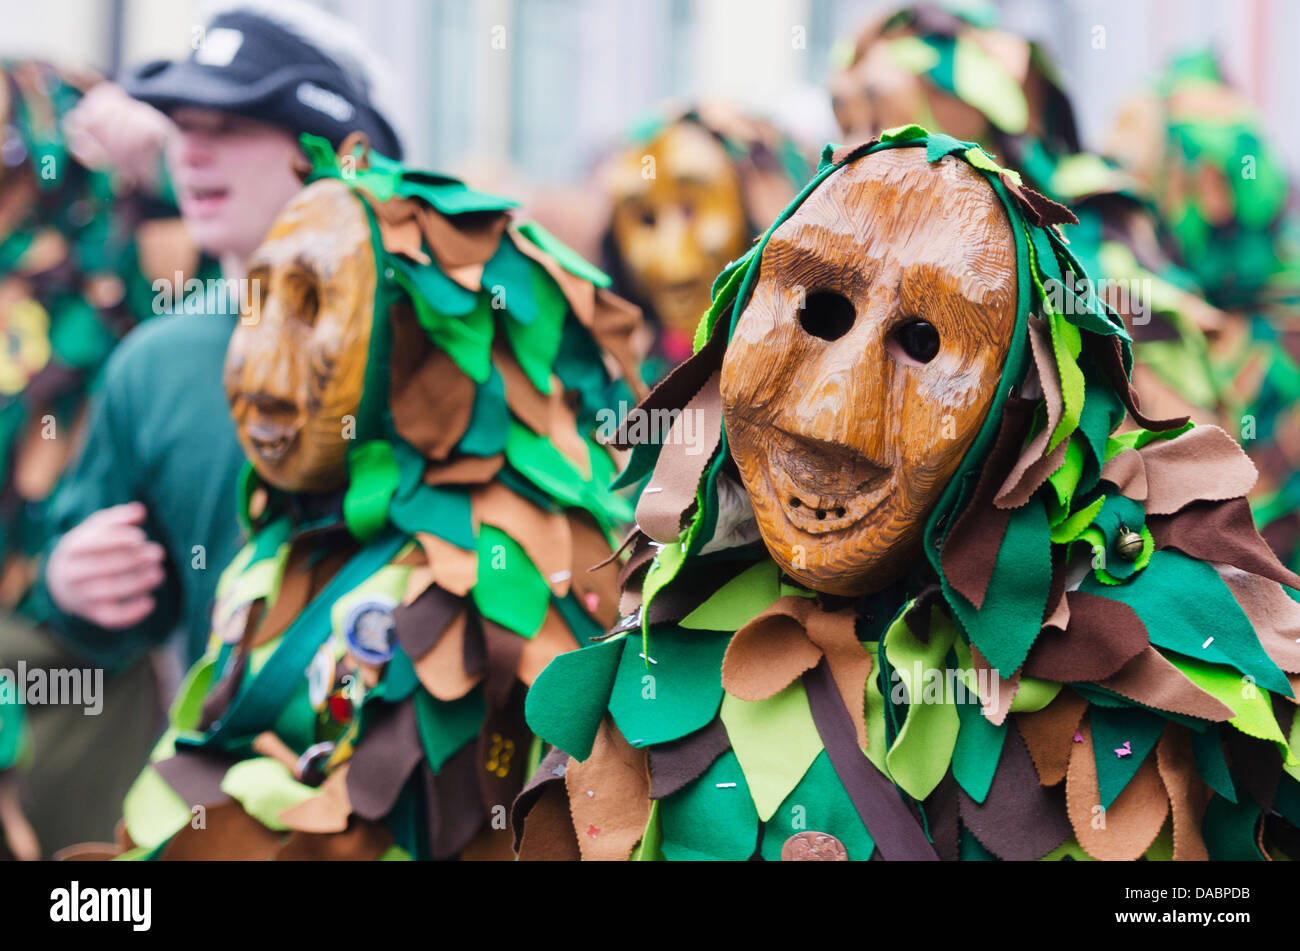 Fasnact spring carnival parade, Weil am Rhein, Germany, Europe - Stock Image